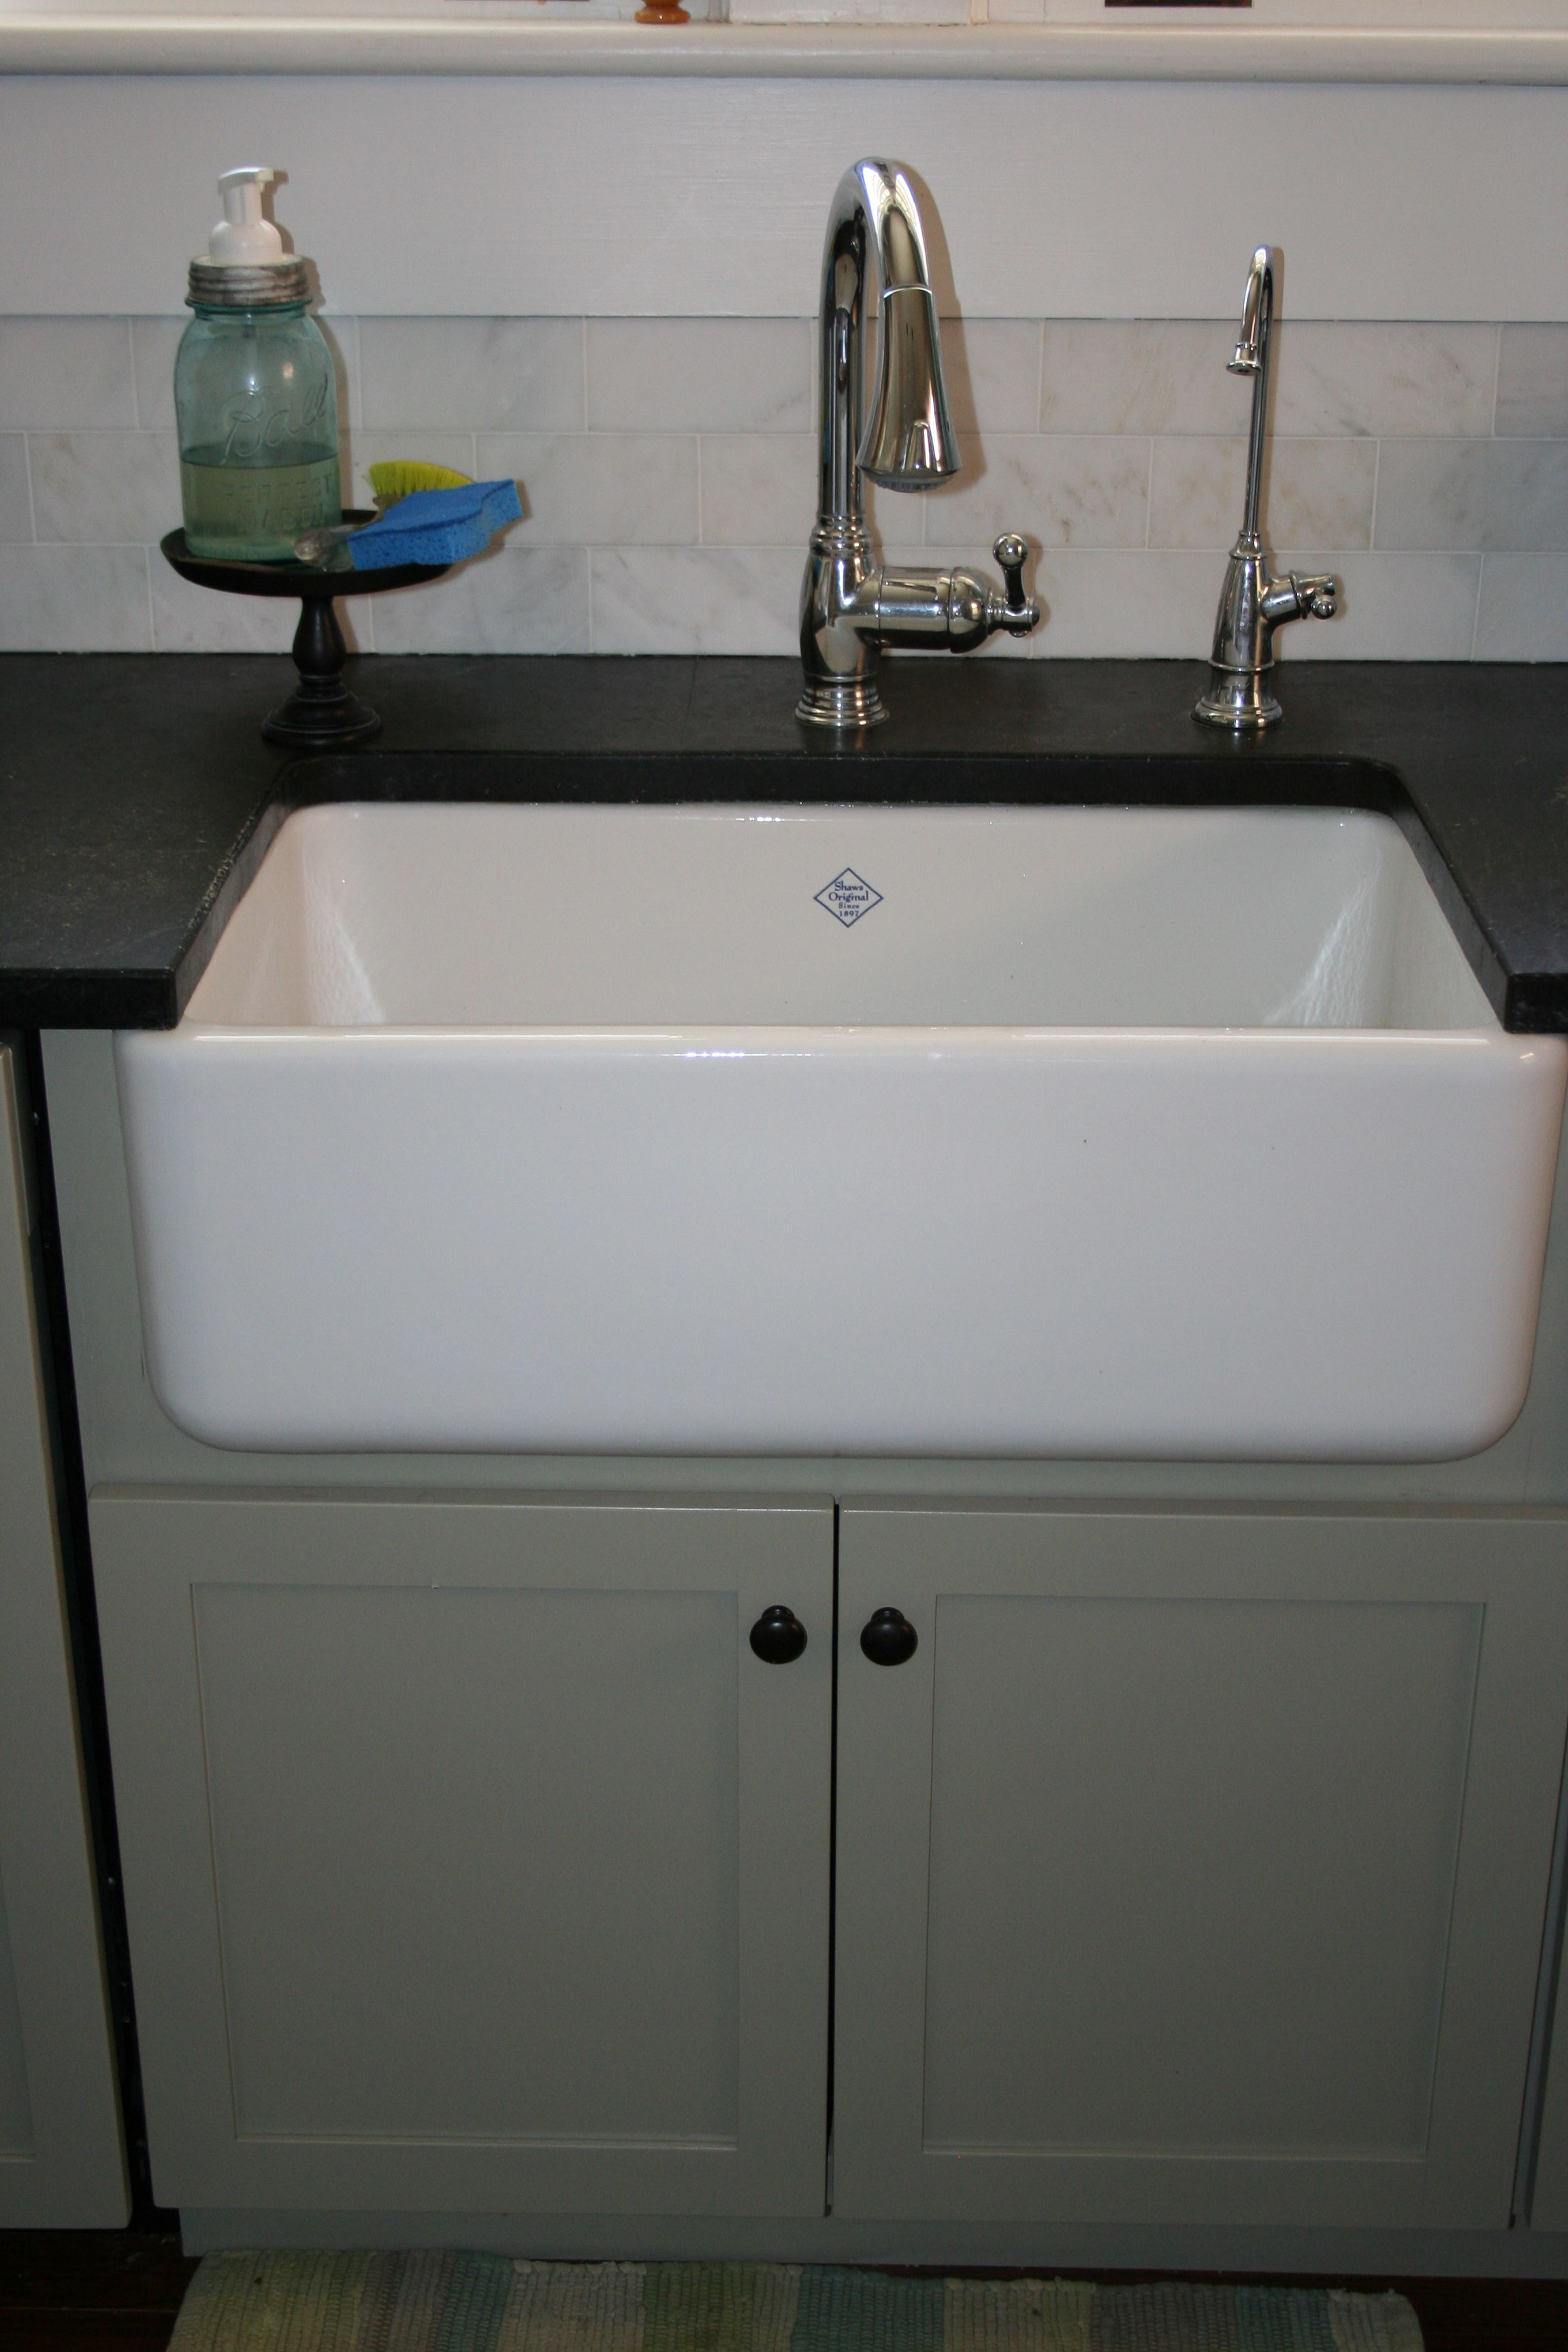 Shaw Farmhouse Sink Reviews Rohls Shaw Apron Front Farmhouse Sink Grohe Bridgeford Faucet